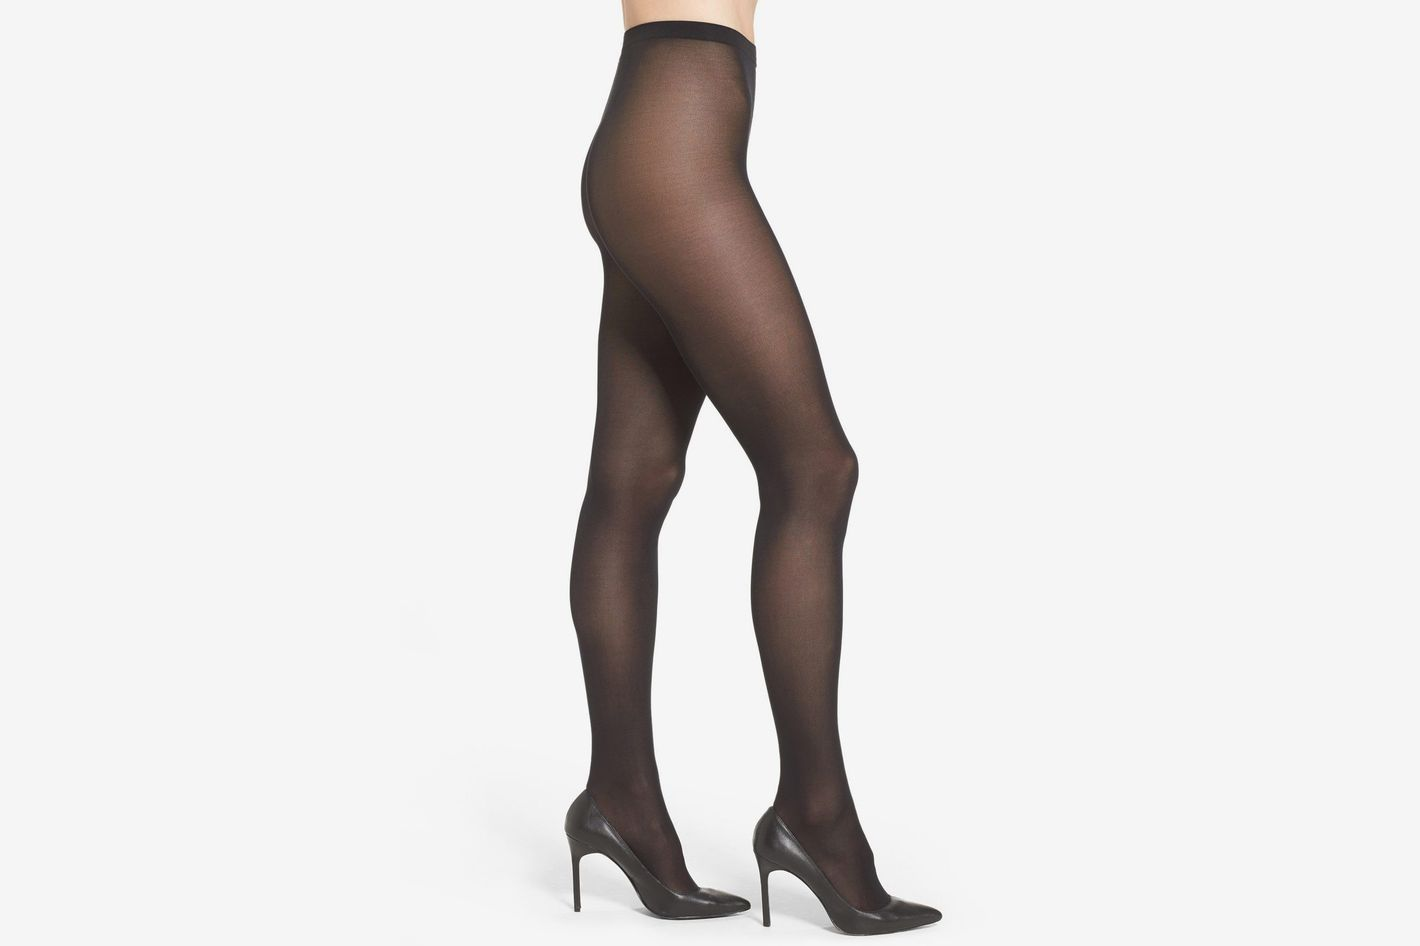 c60615df8ace5 8 Best Black Tights Women 2017: Opaque, Cheap, Plus-Size